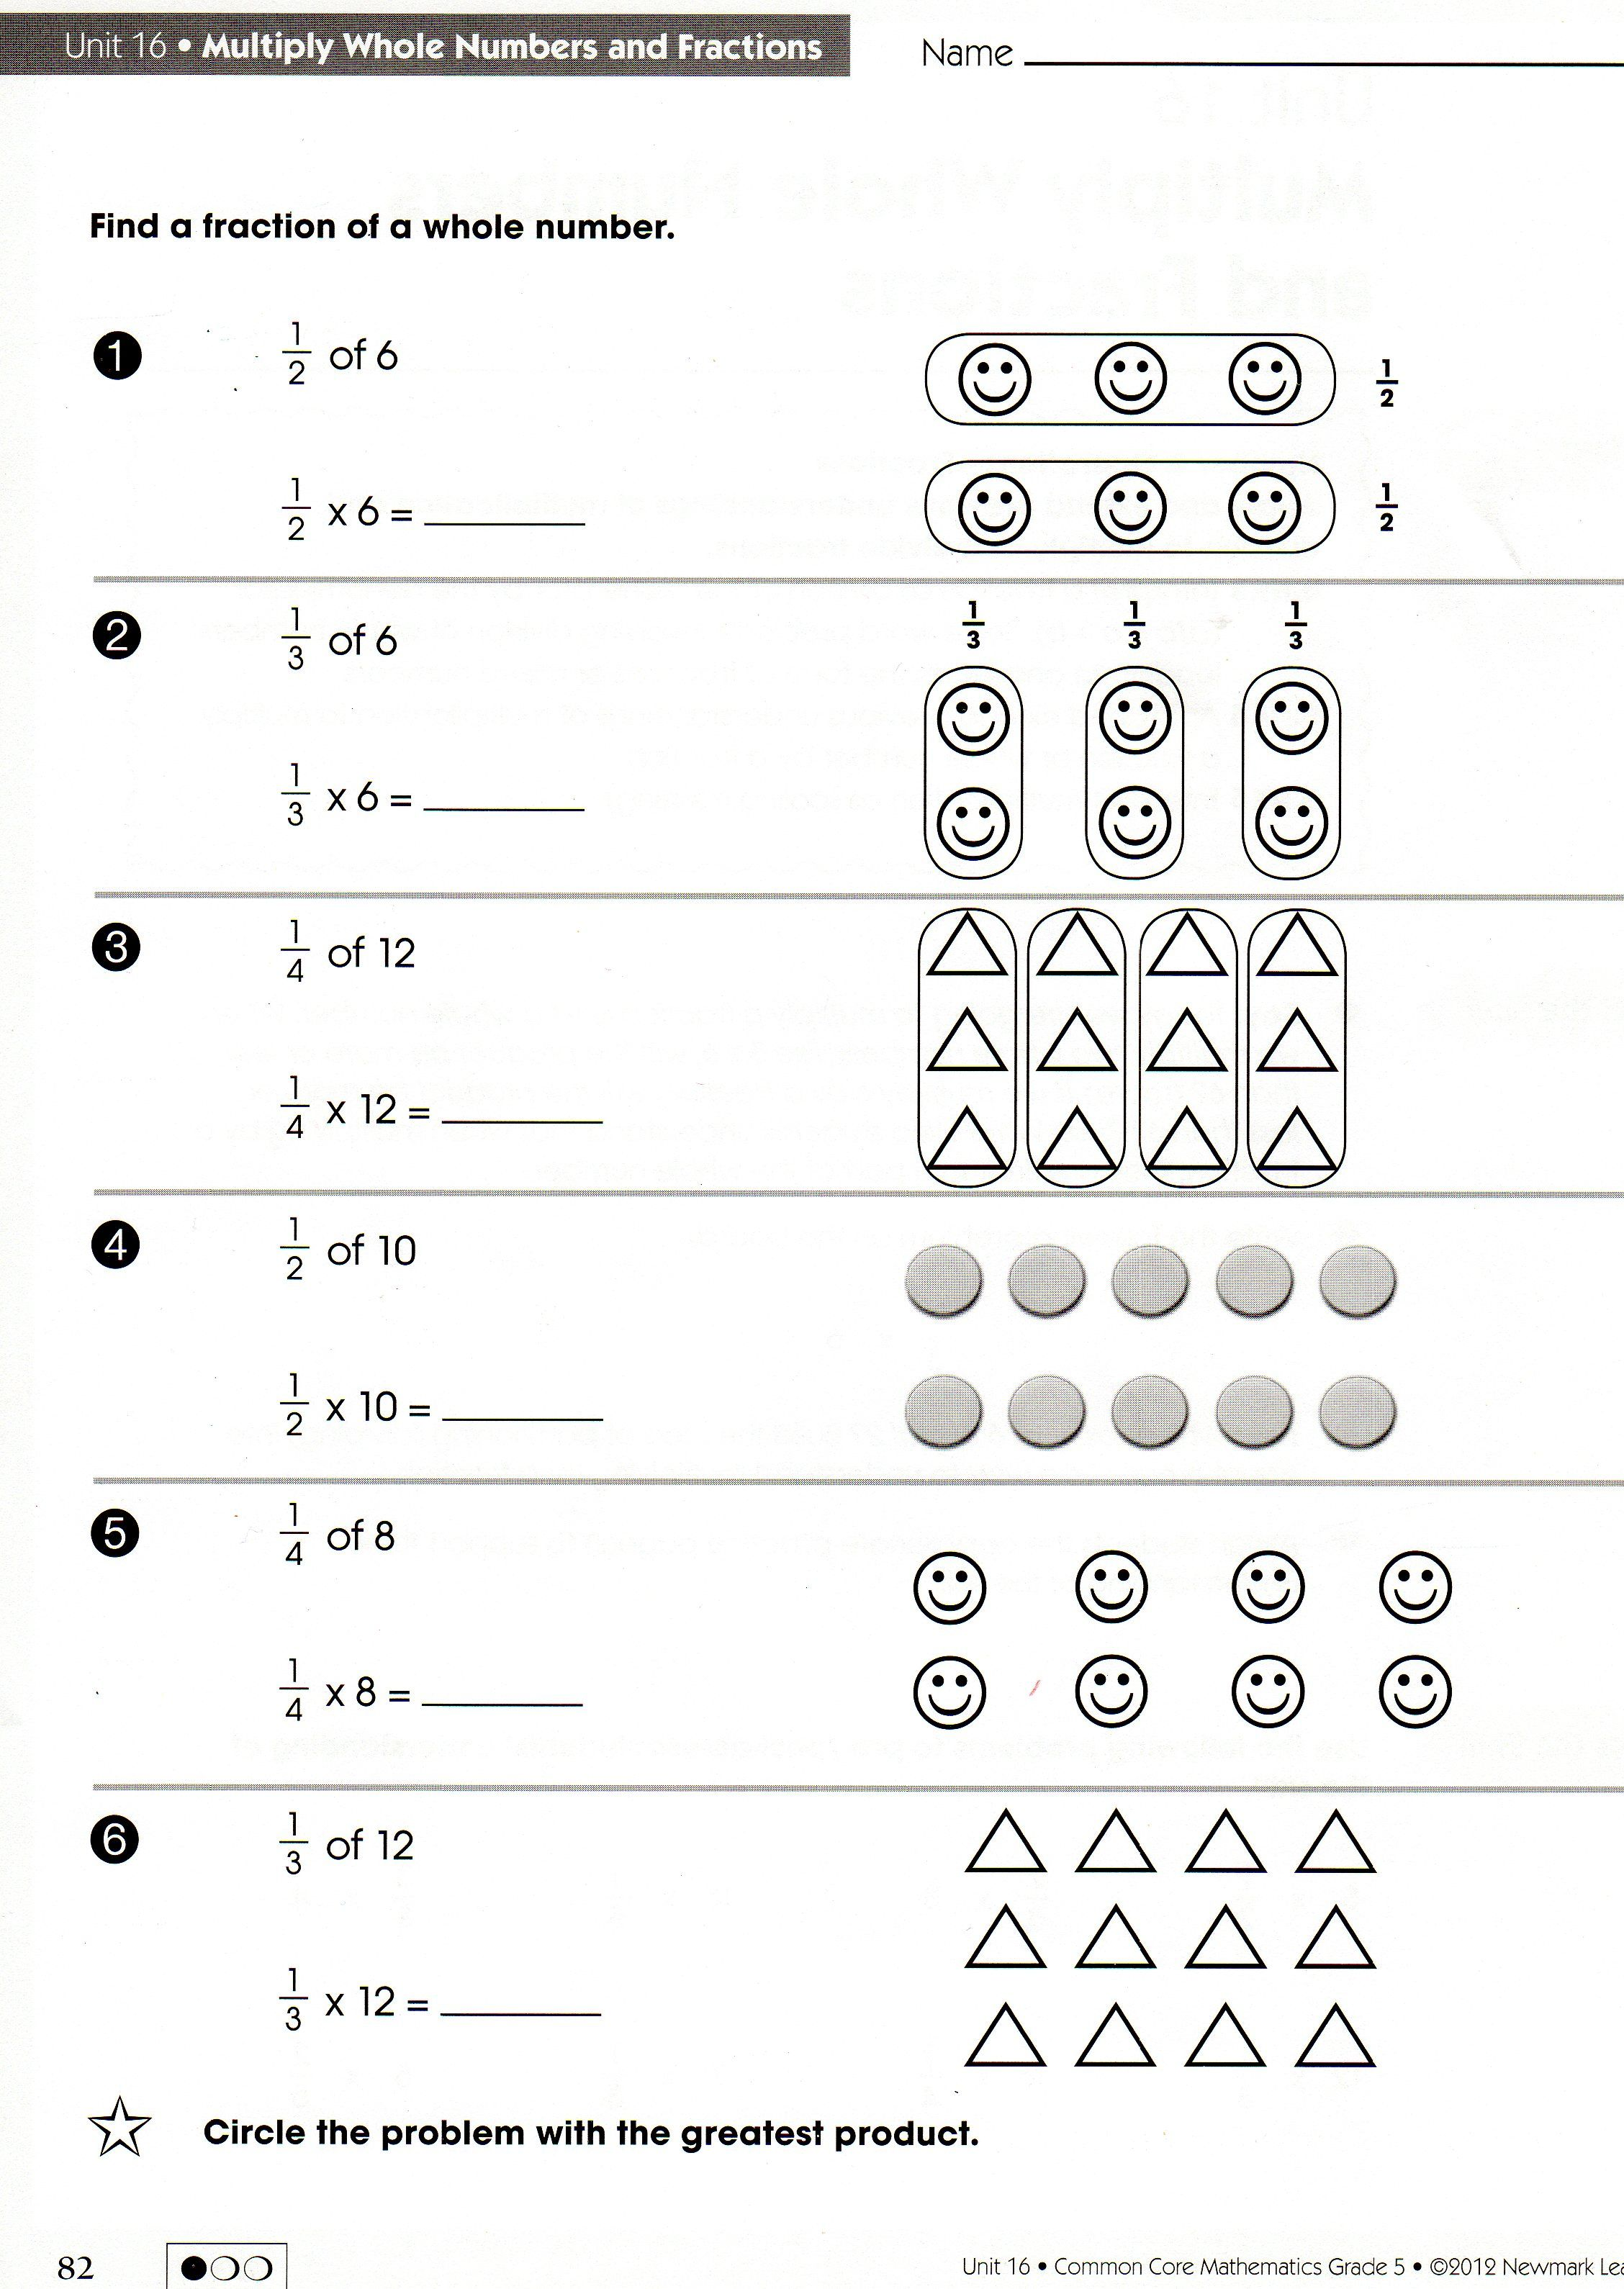 worksheet Multiply Fractions By Whole Numbers Worksheet fraction of a whole worksheet order operations easy worksheets multiply fractions with numbers rounding d580952107232838ebe7f1612eae5a3b numbershtml fracti